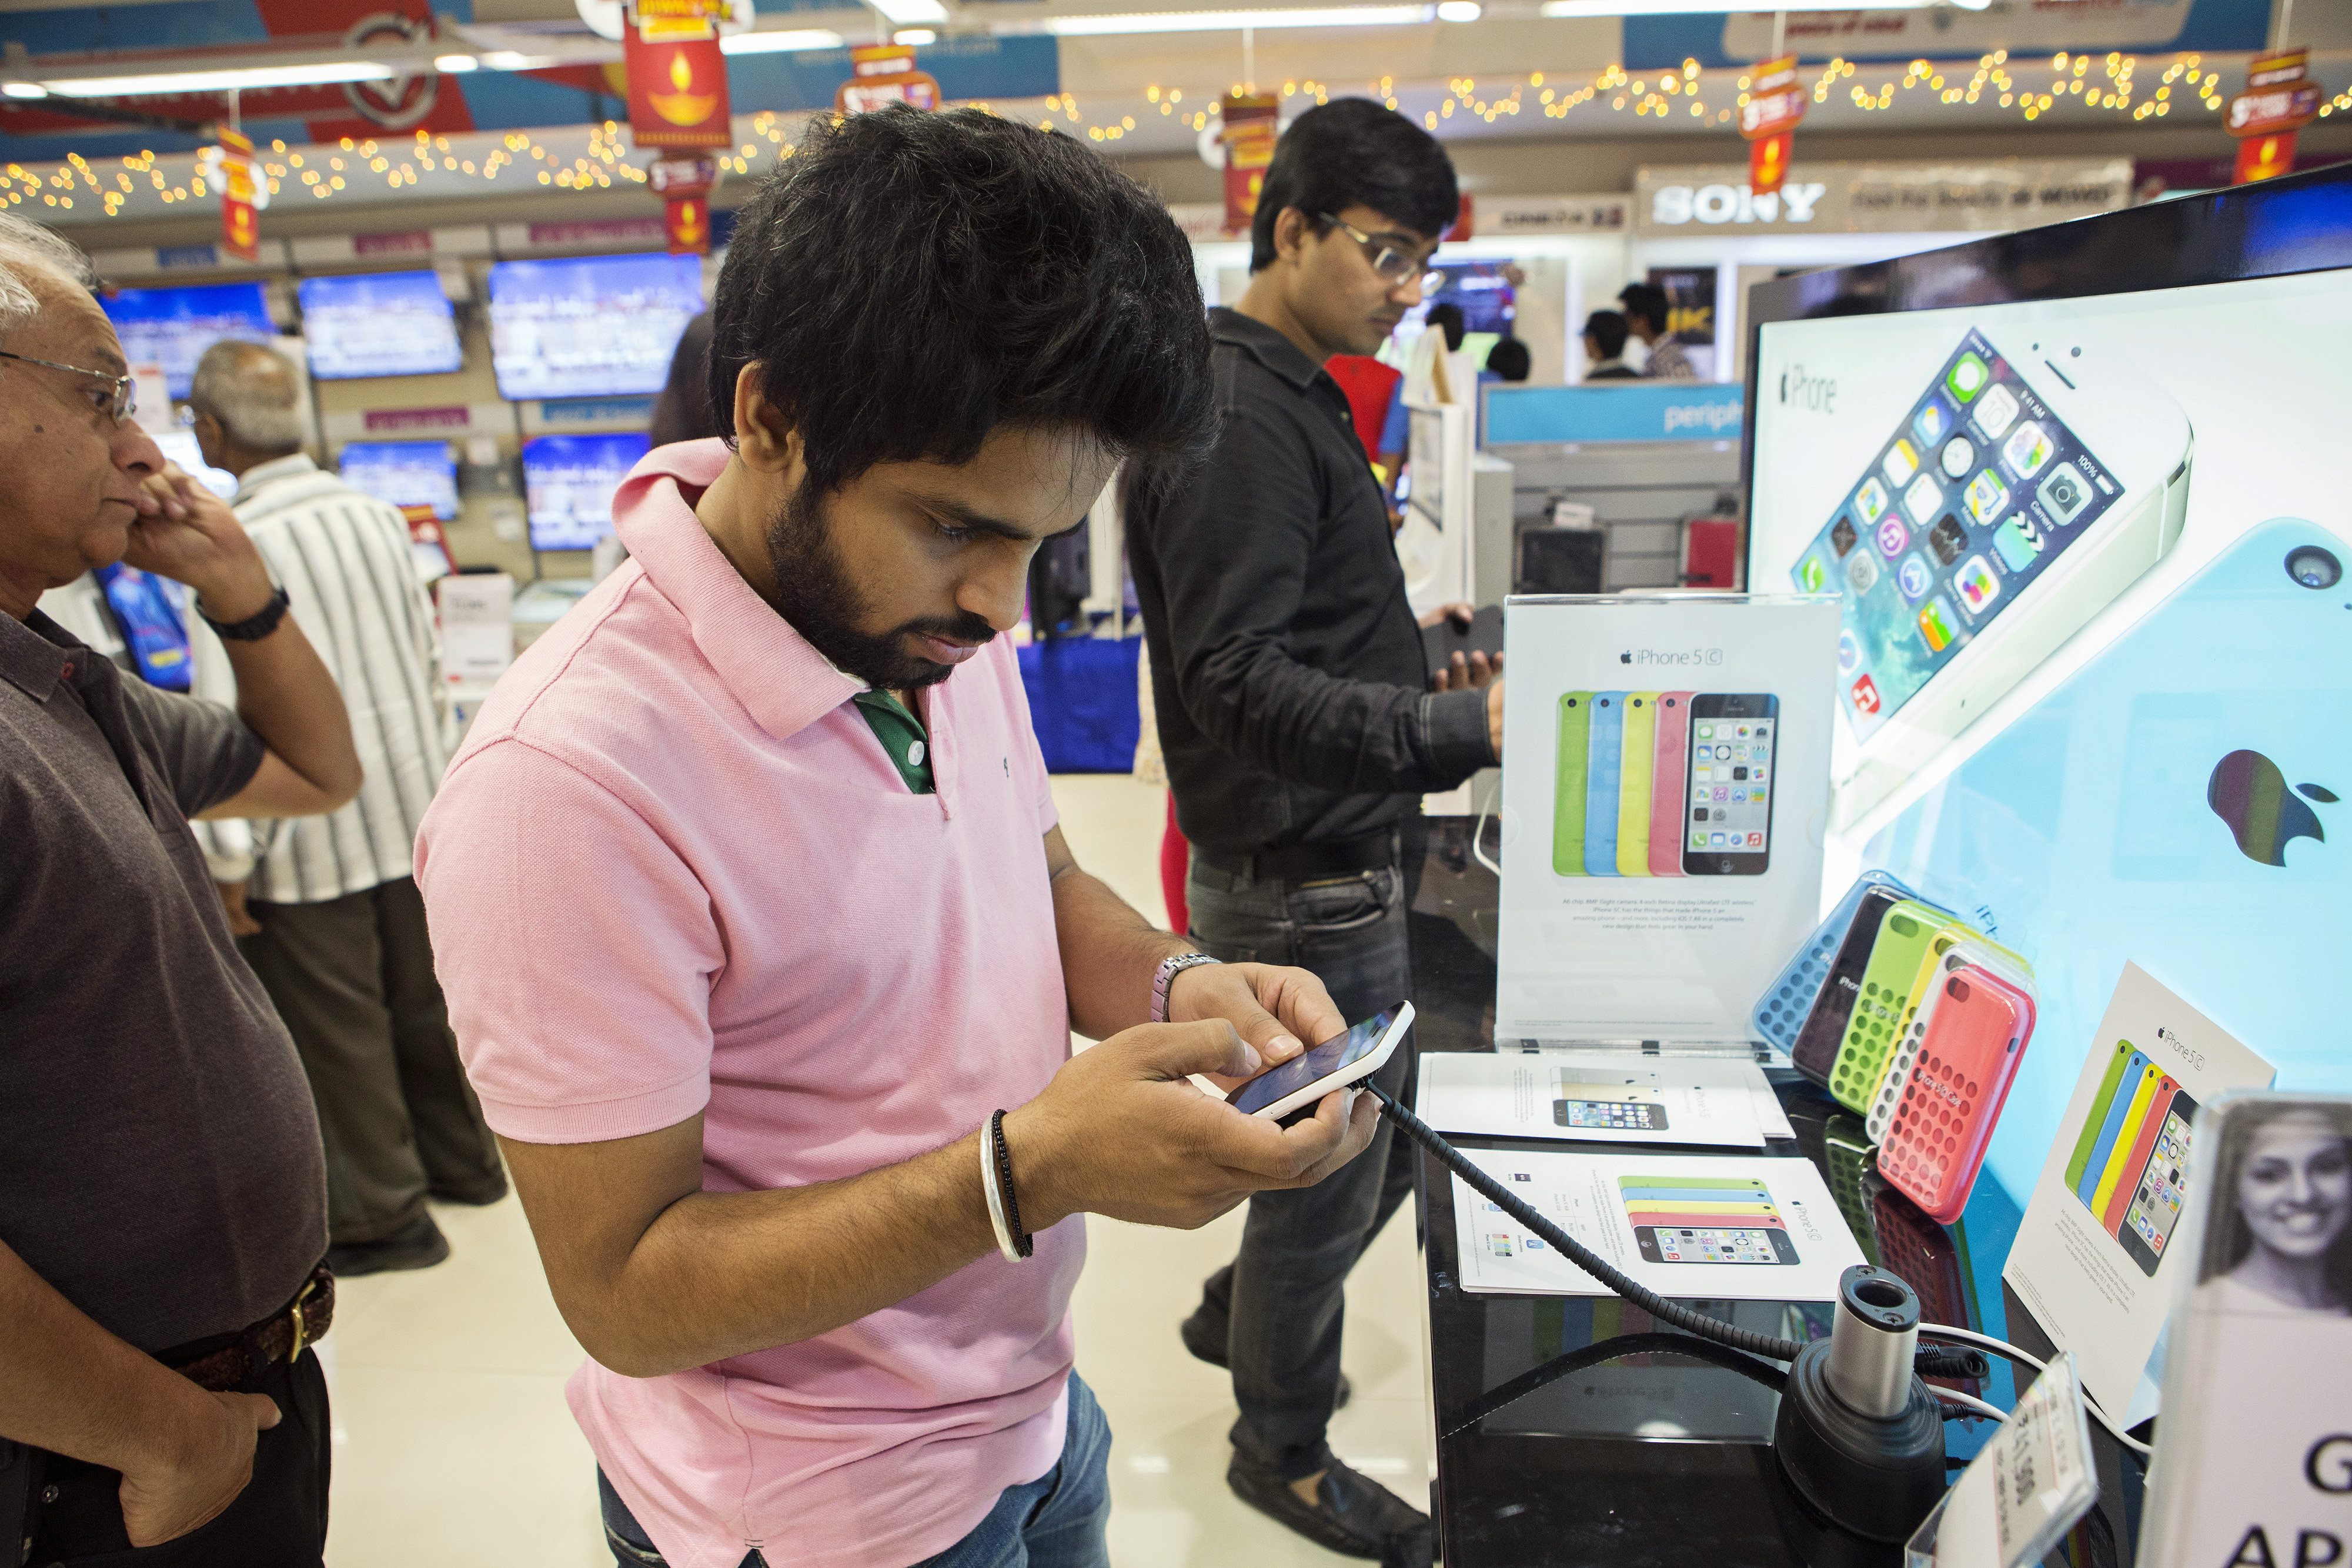 A customer tries out an Apple Inc. iPhone 5C at a Reliance Digital store, a subsidiary of Reliance Industries Ltd., in New Delhi, India, on Saturday, Nov. 2, 2013.